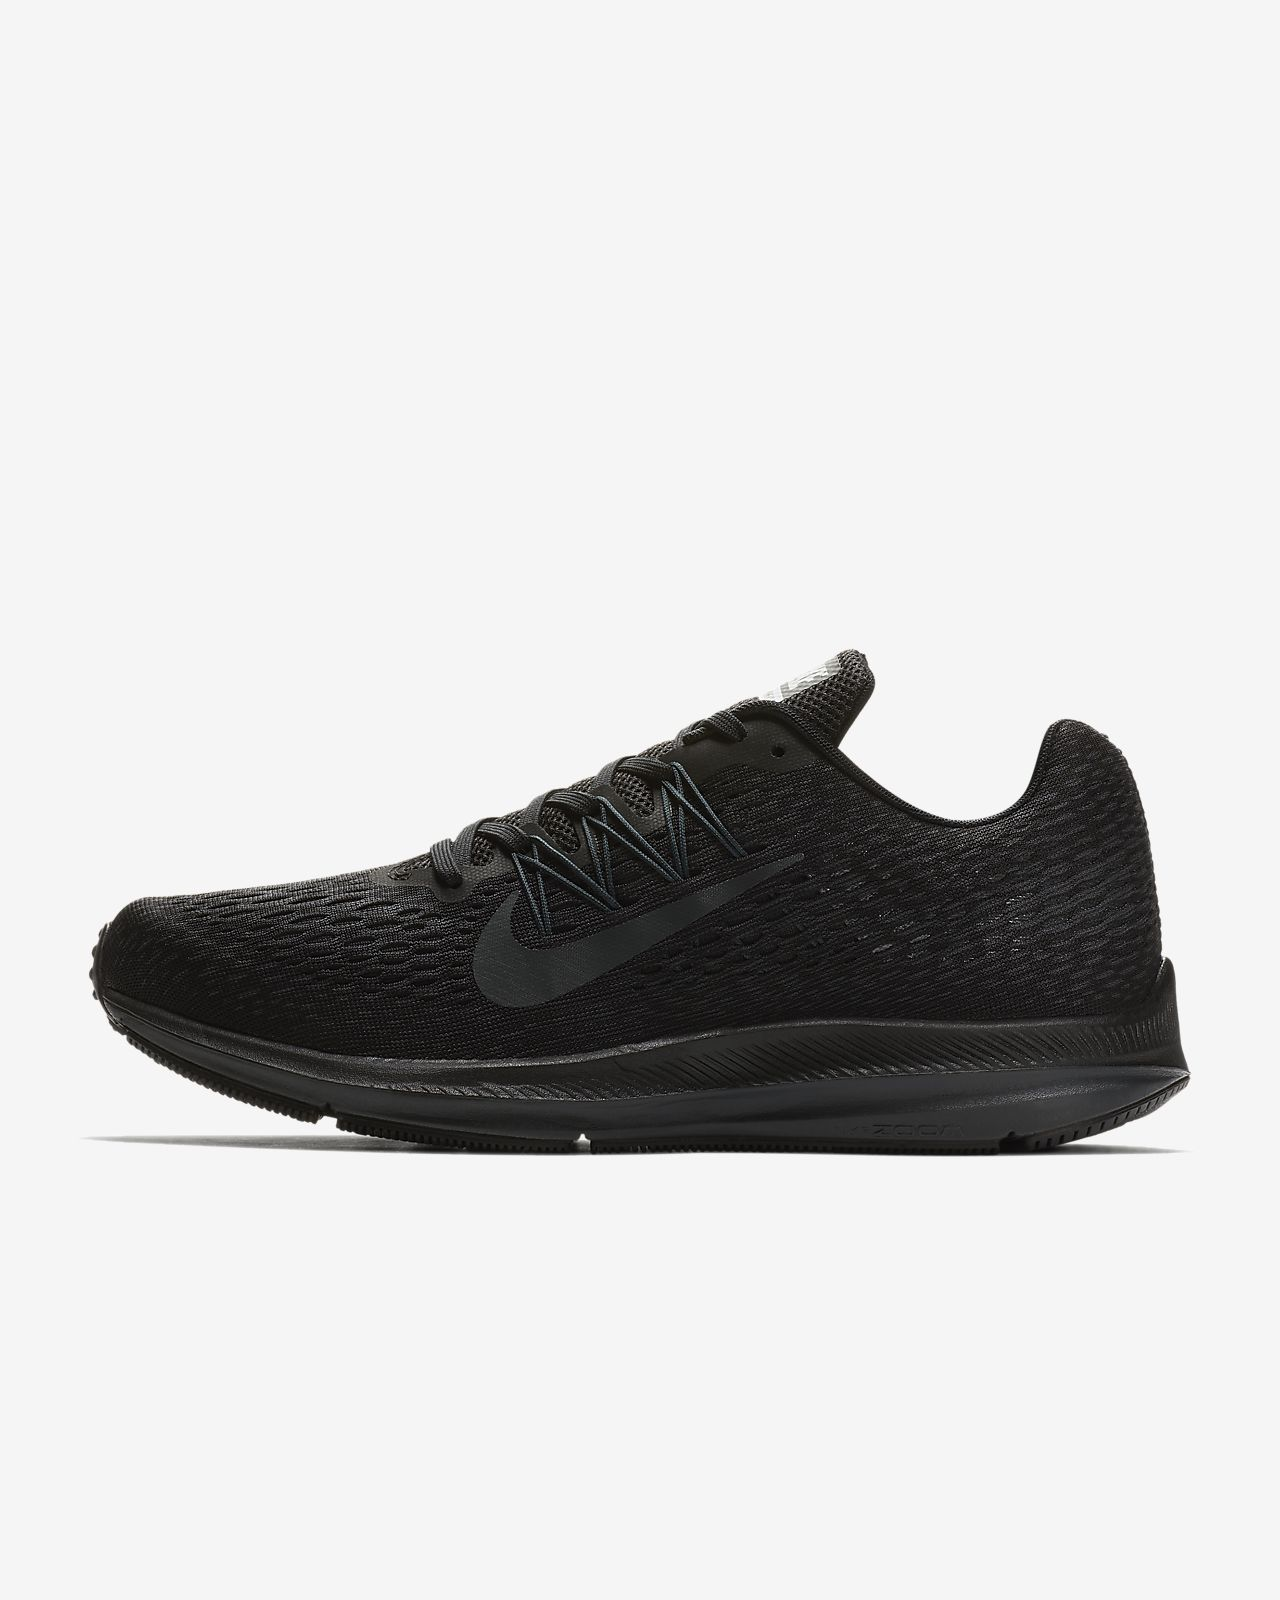 7a481ce9cf81c Nike Air Zoom Winflo 5 Men s Running Shoe. Nike.com IE